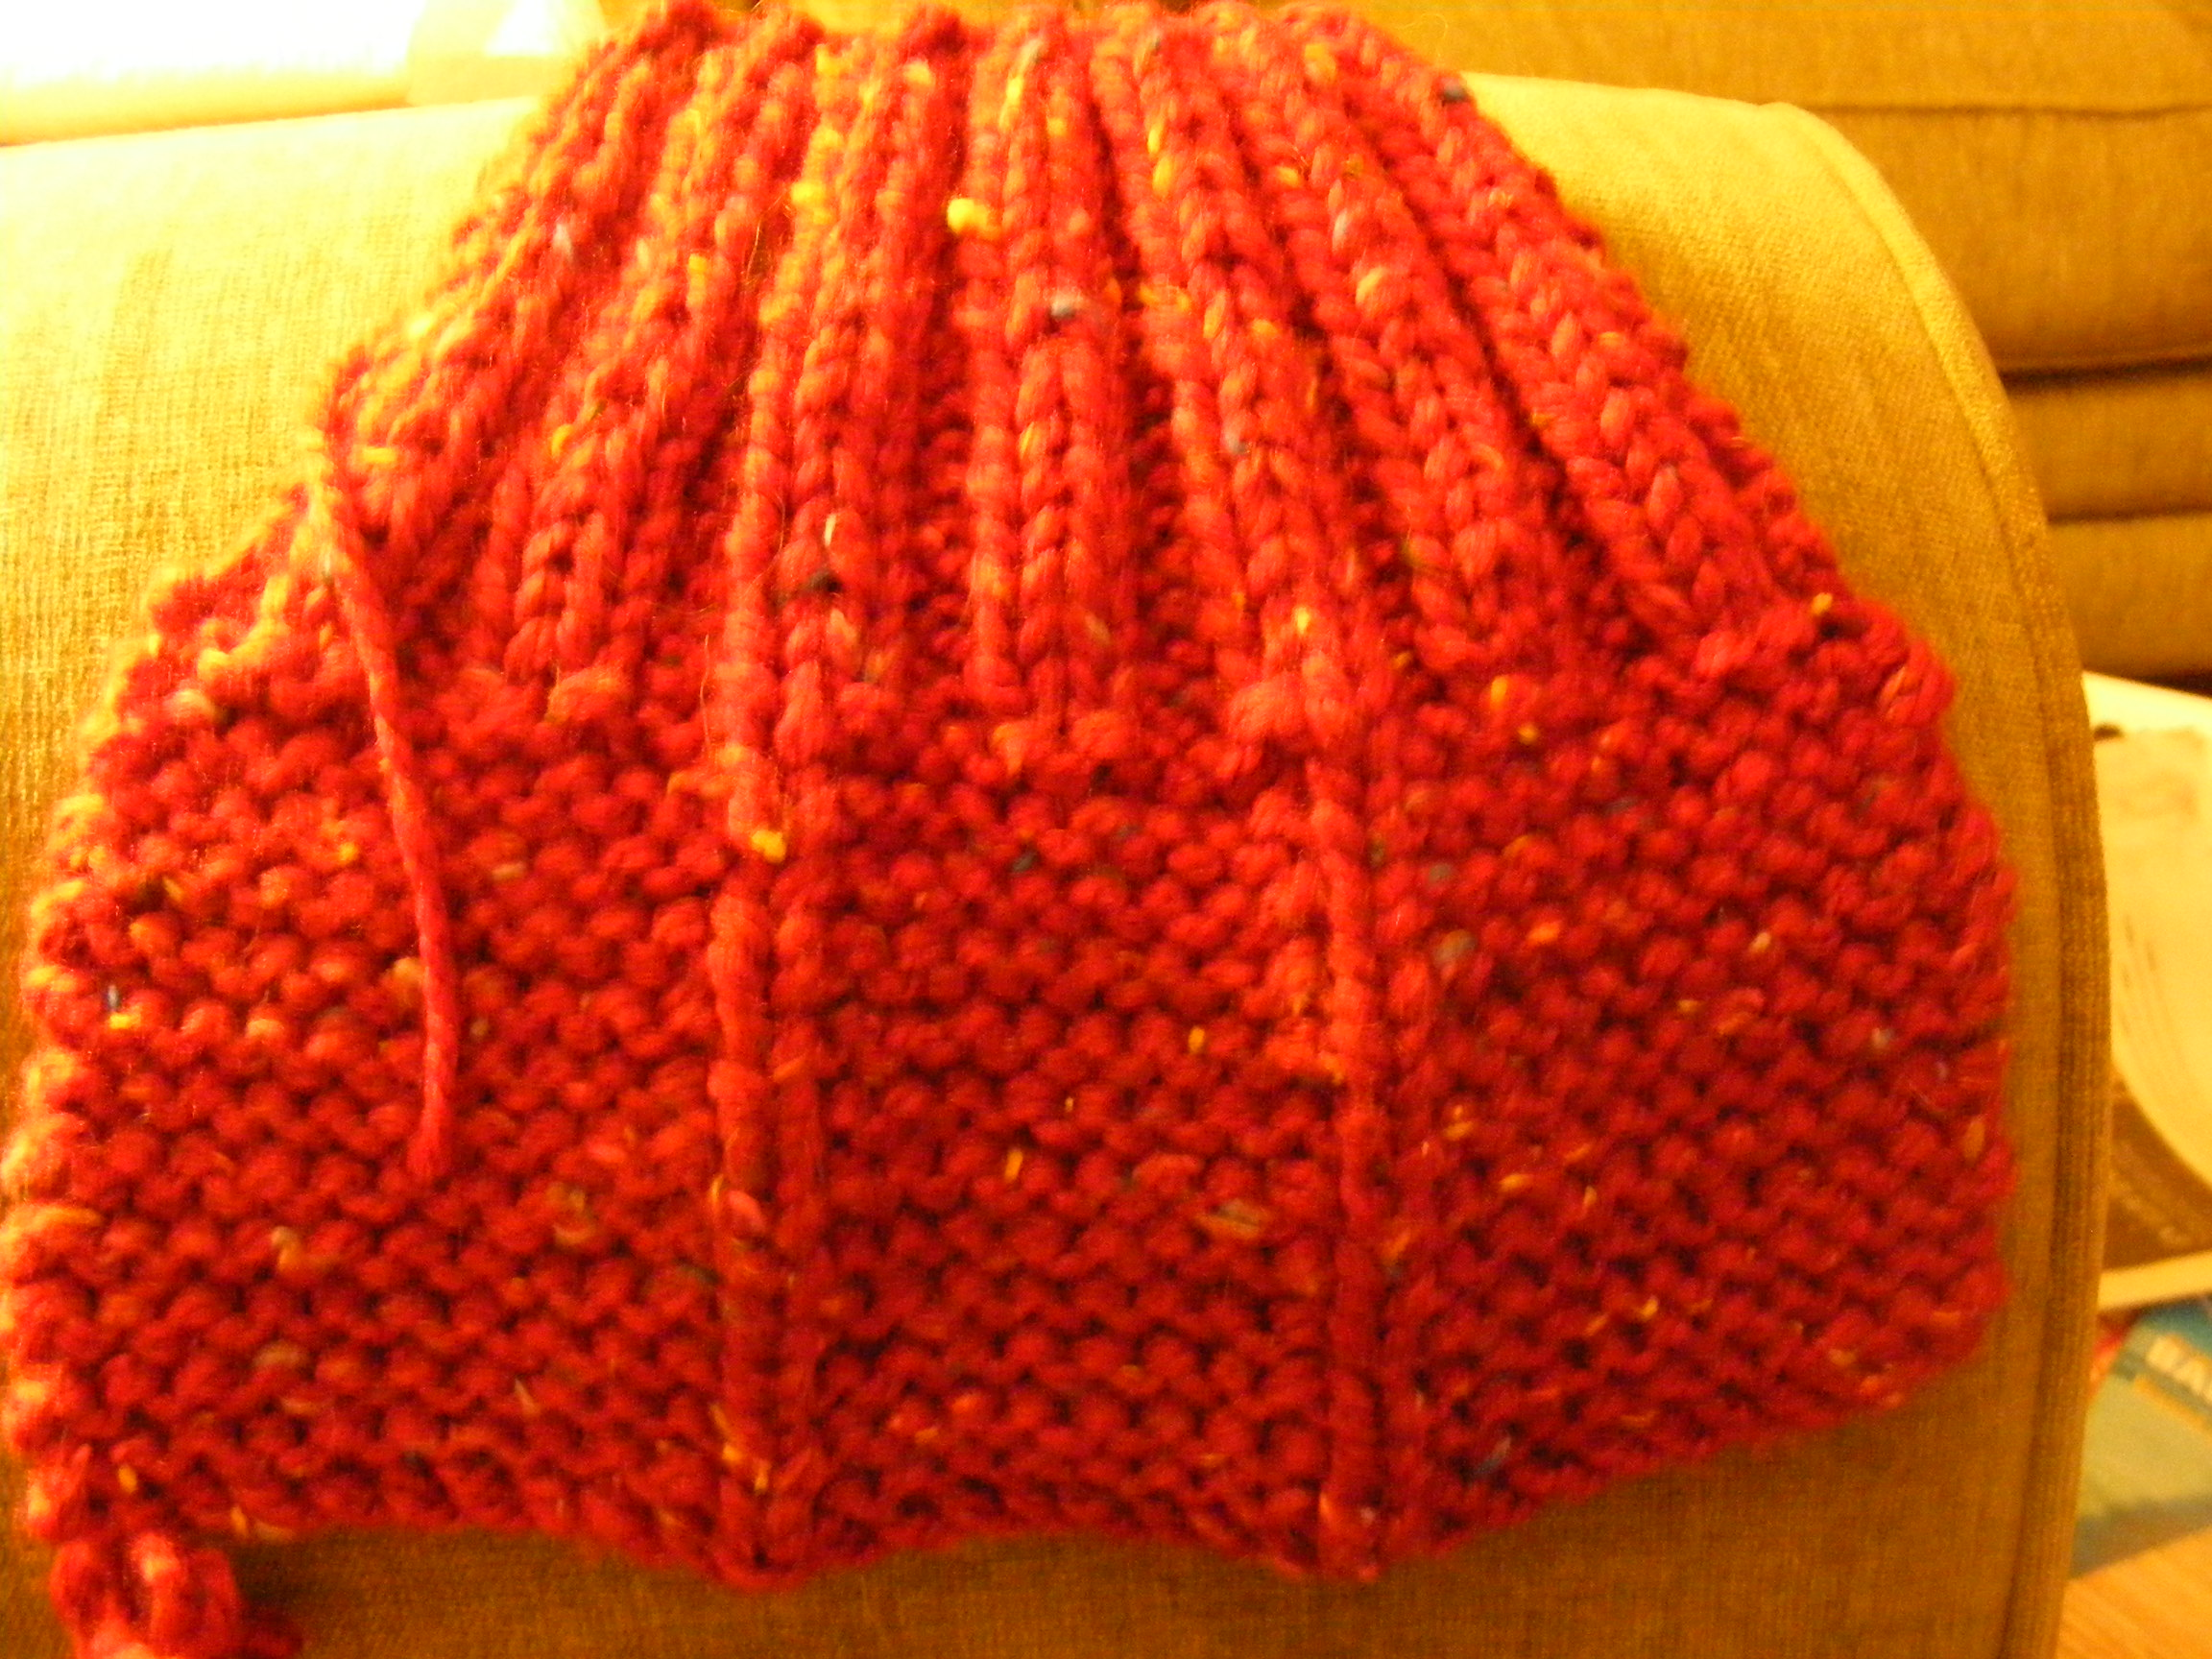 Knitting Grandma Slippers : Yours til niagara falls: knitted slippers made by granny